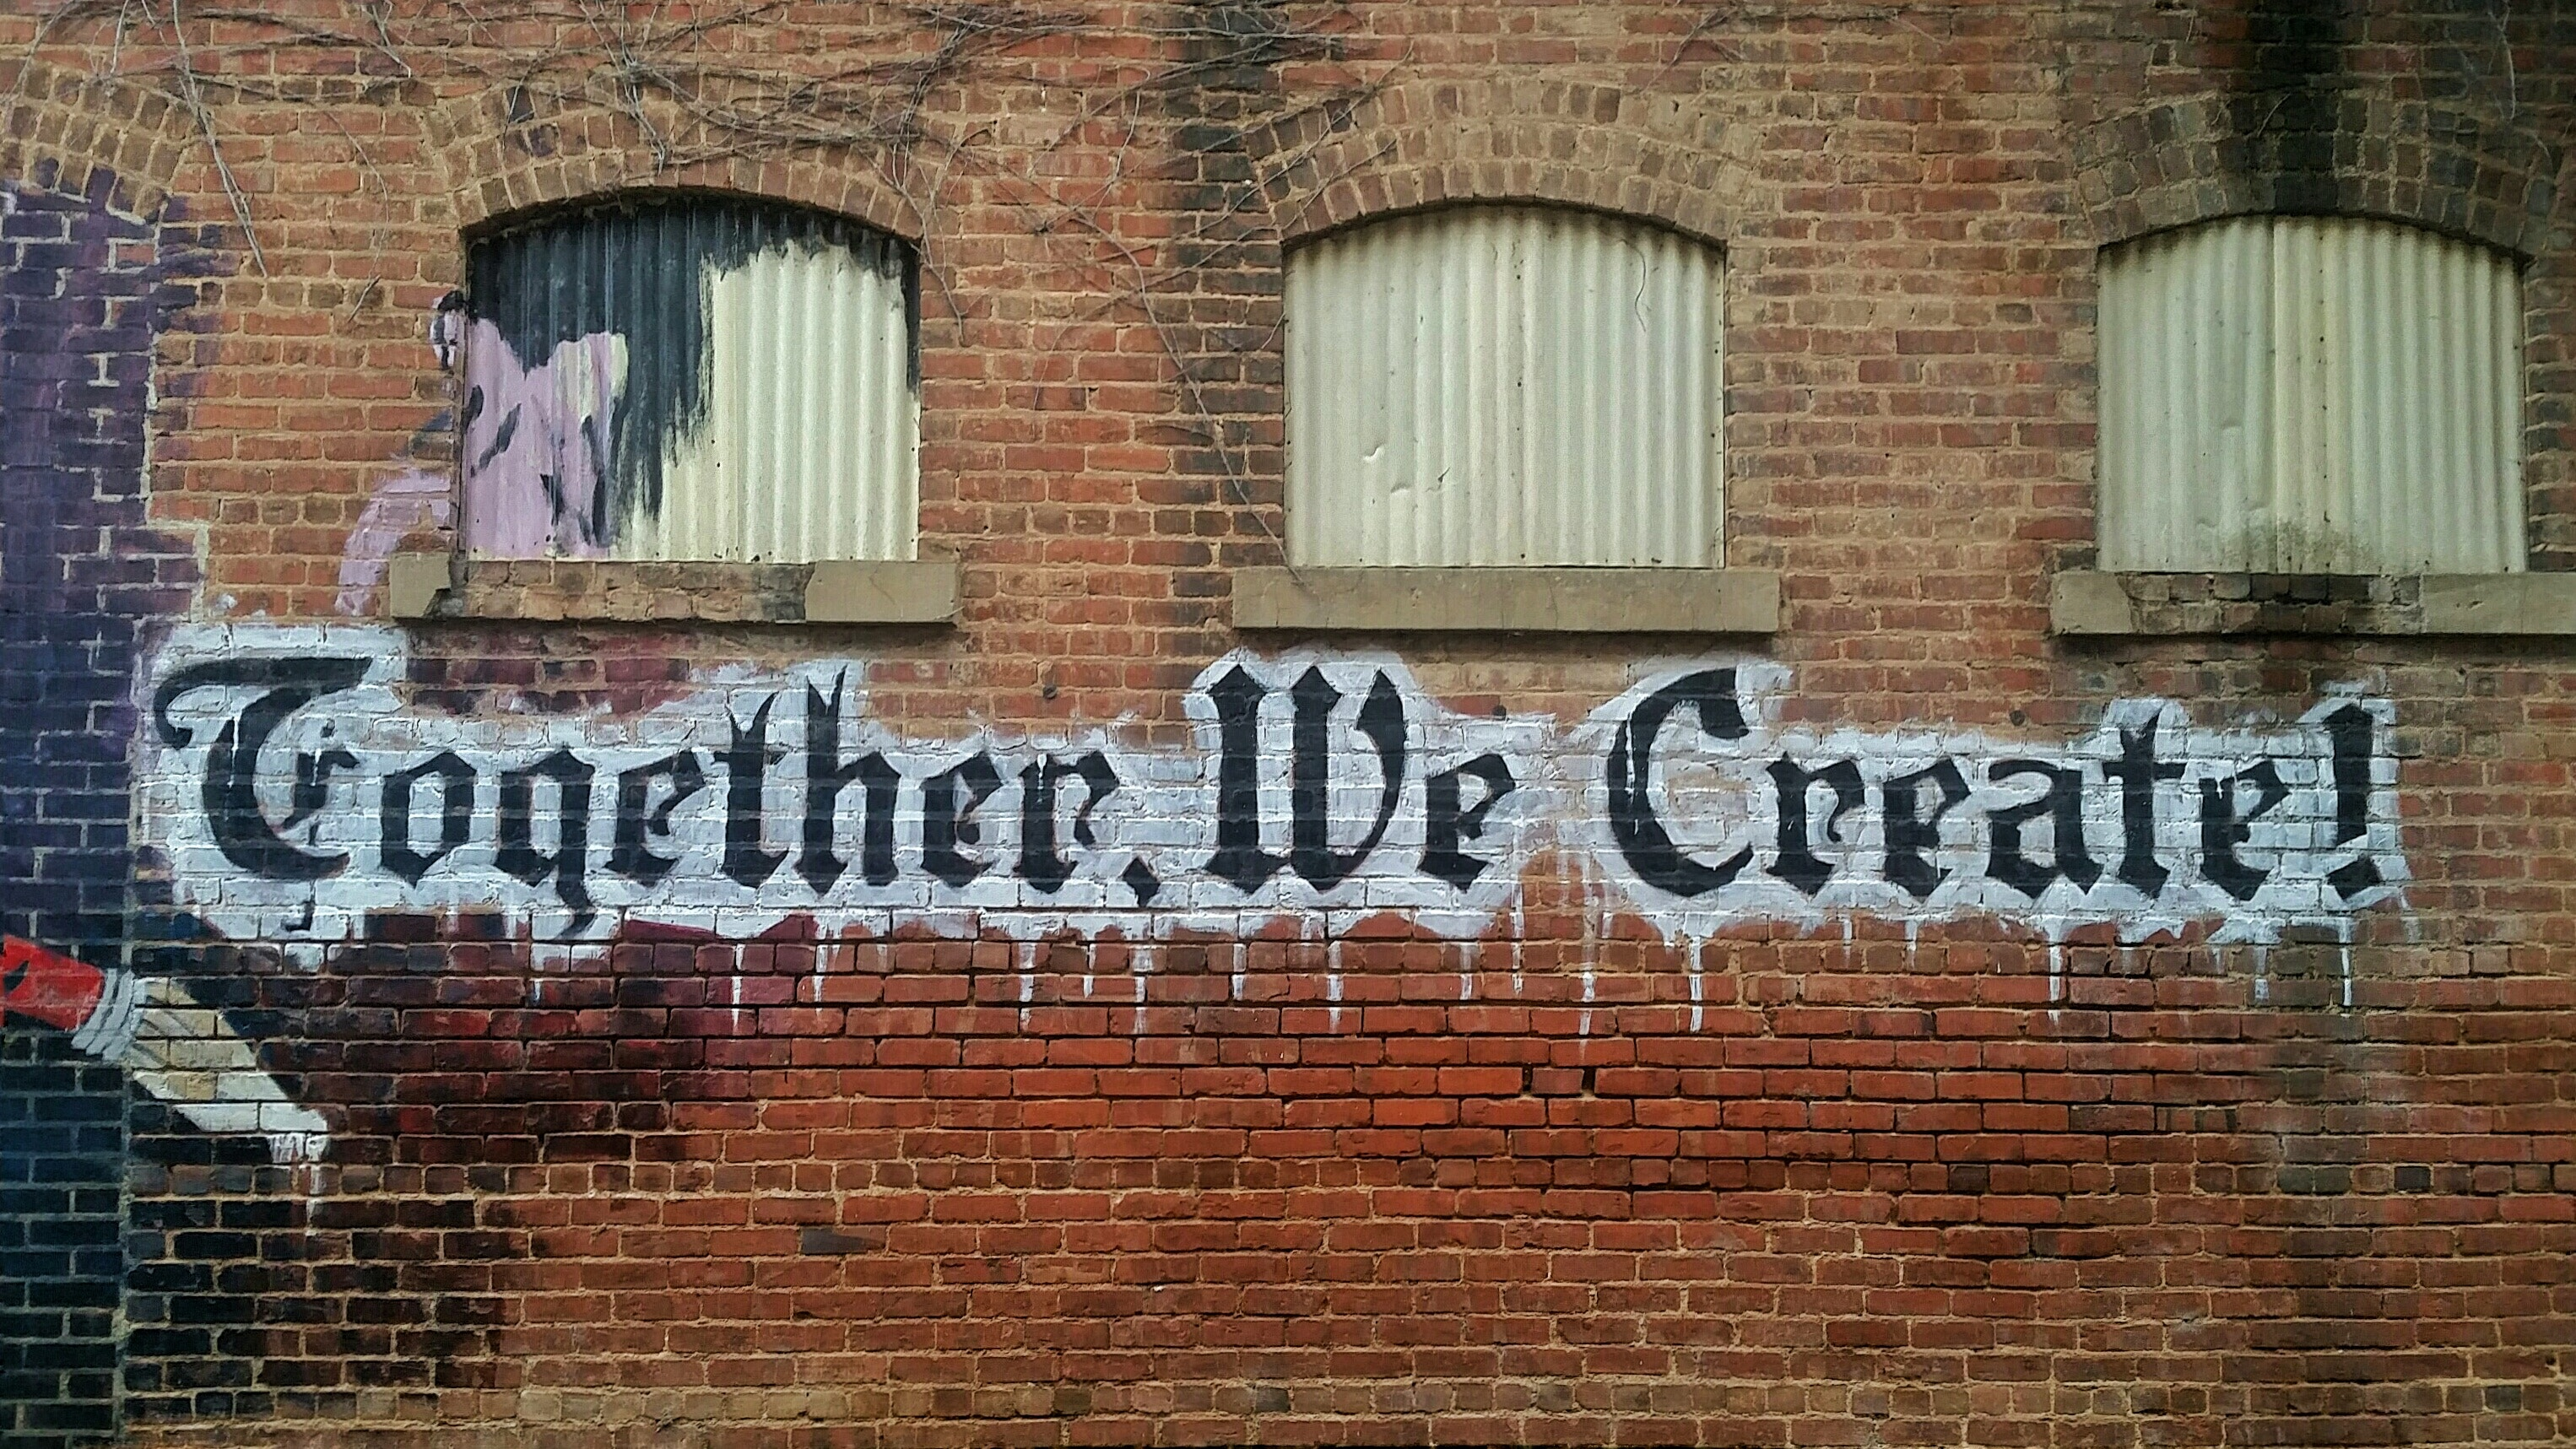 Together, we create!